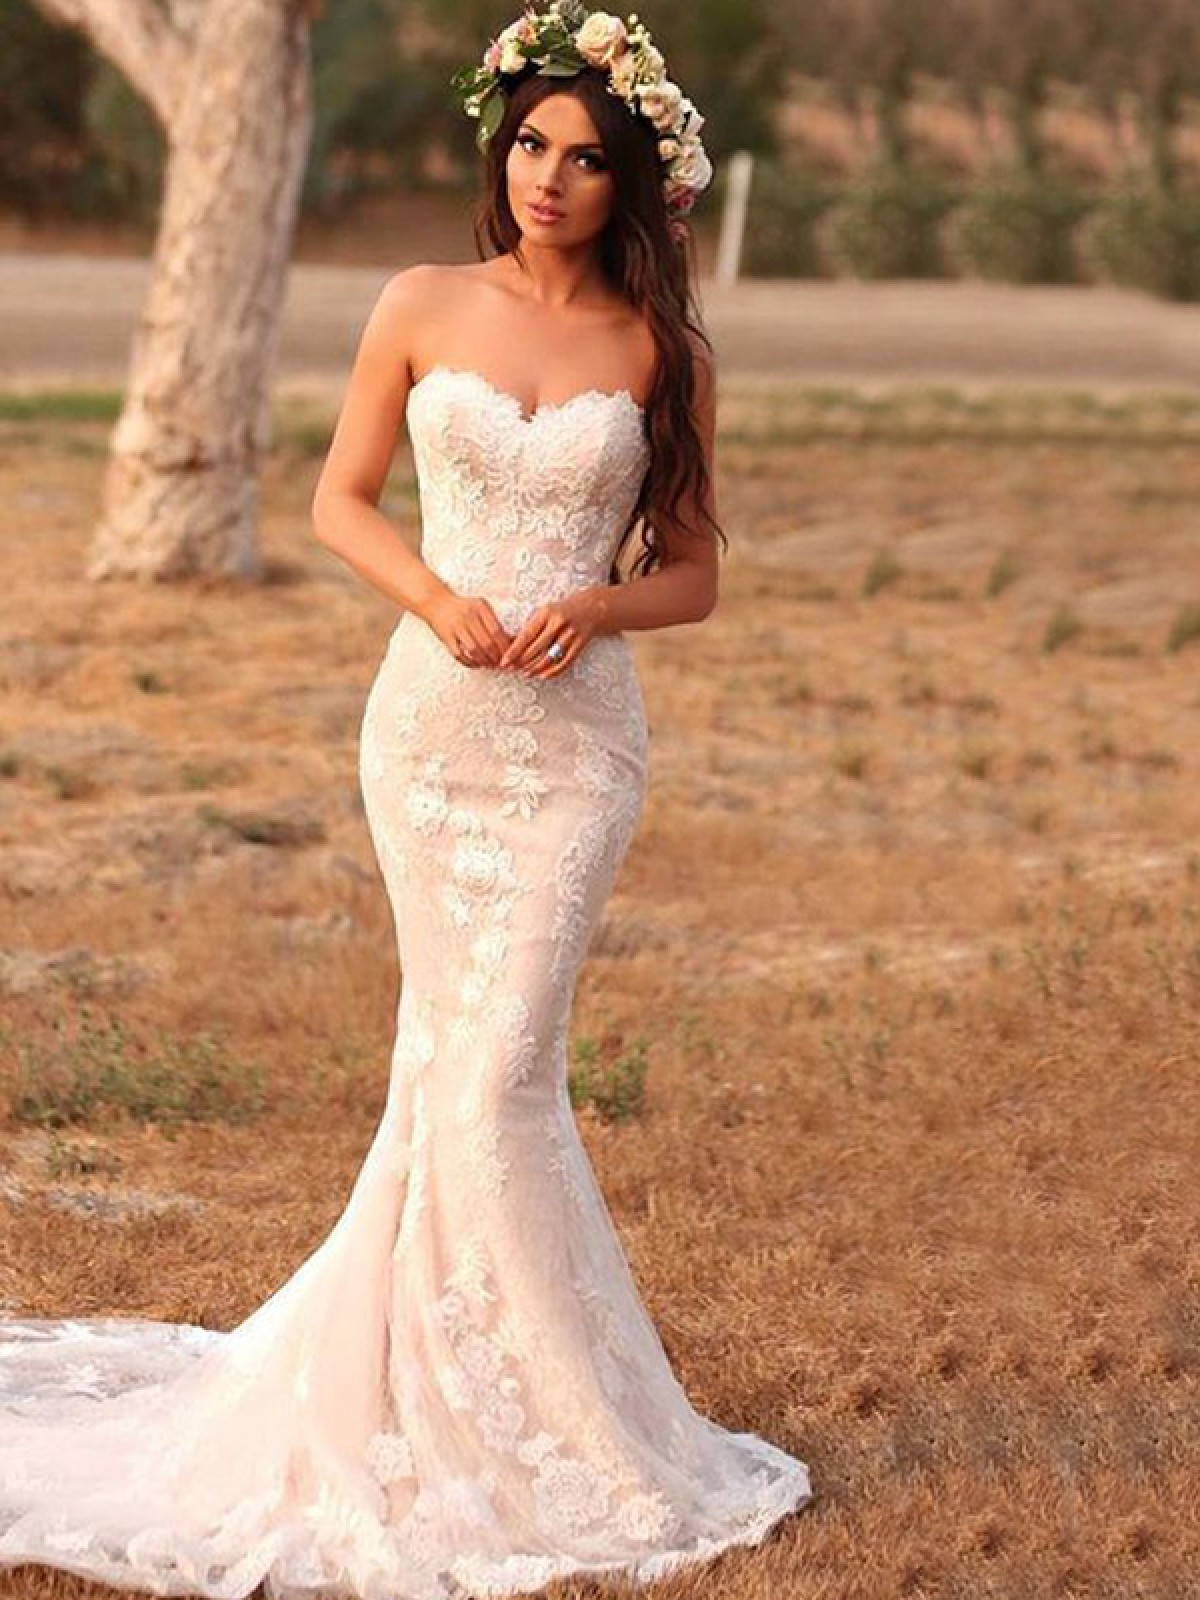 Beach Wedding Dresses Shop Romantic Beach Wedding Dresses 2020